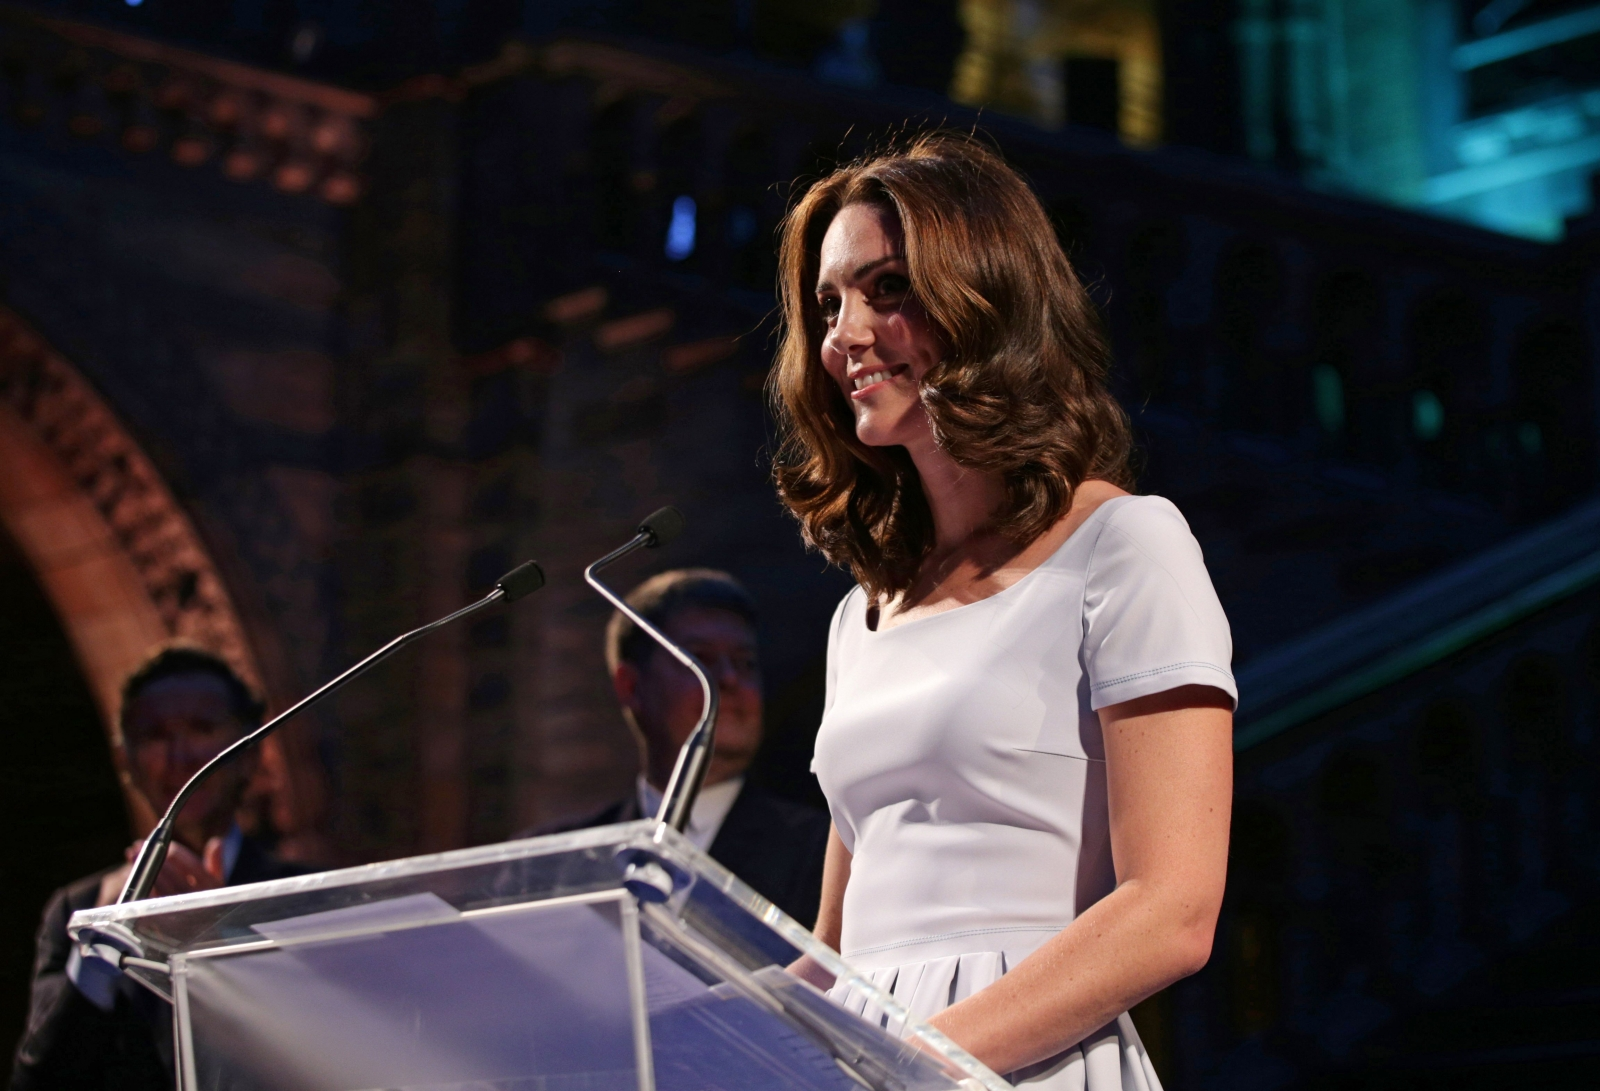 Kate Middleton at the Natural History Museum